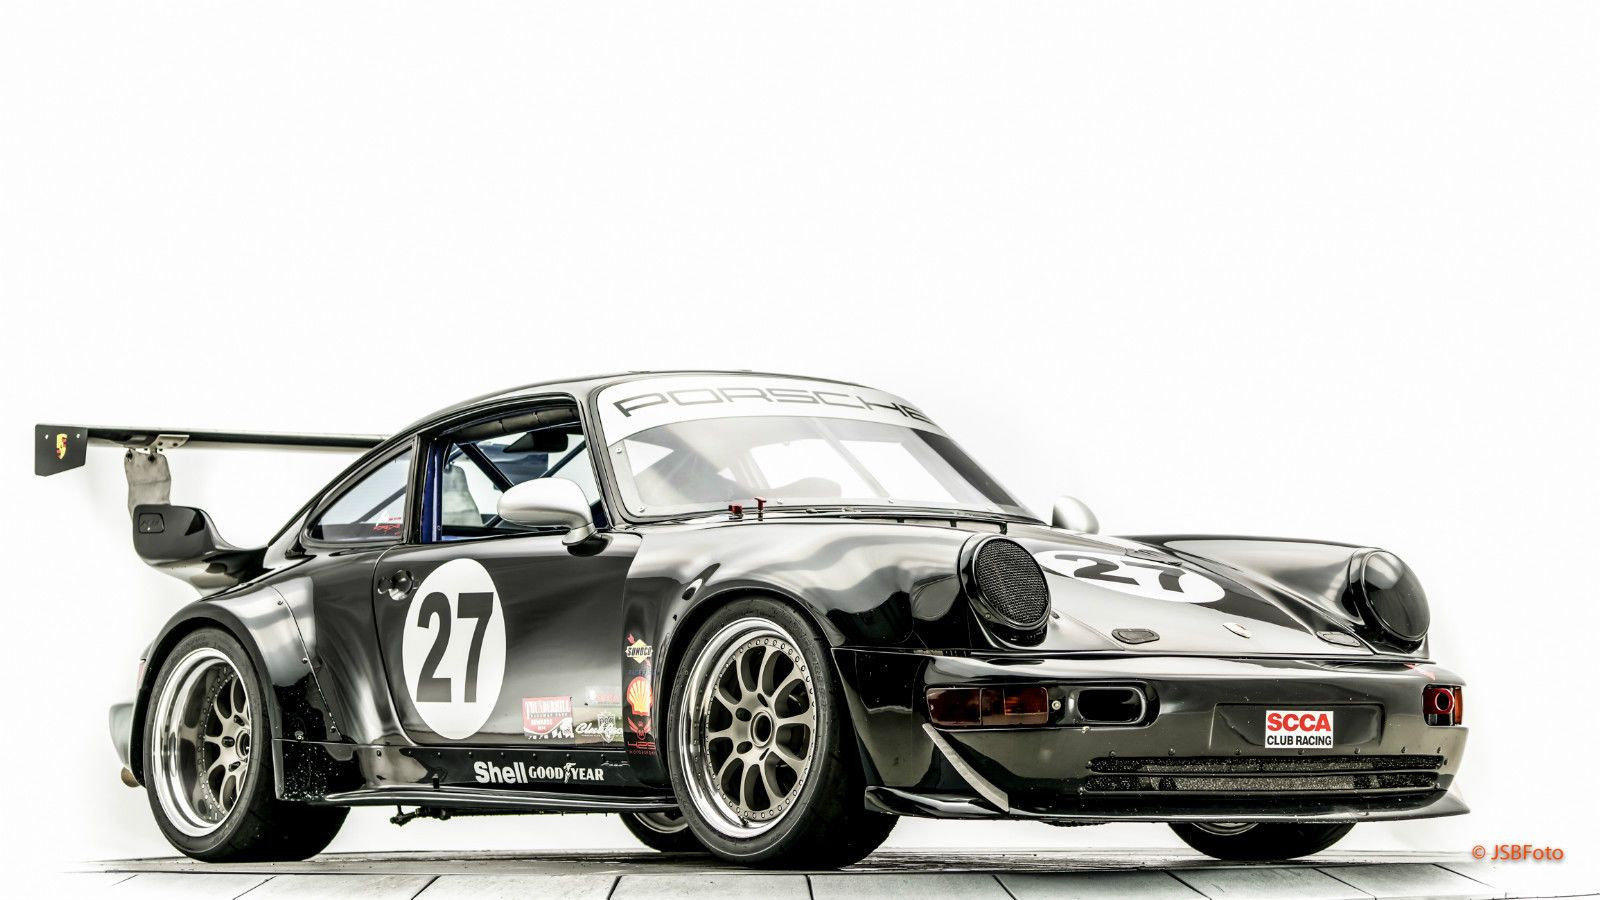 This great looking Porsche Race Car is a real 930. Very few turbo ...